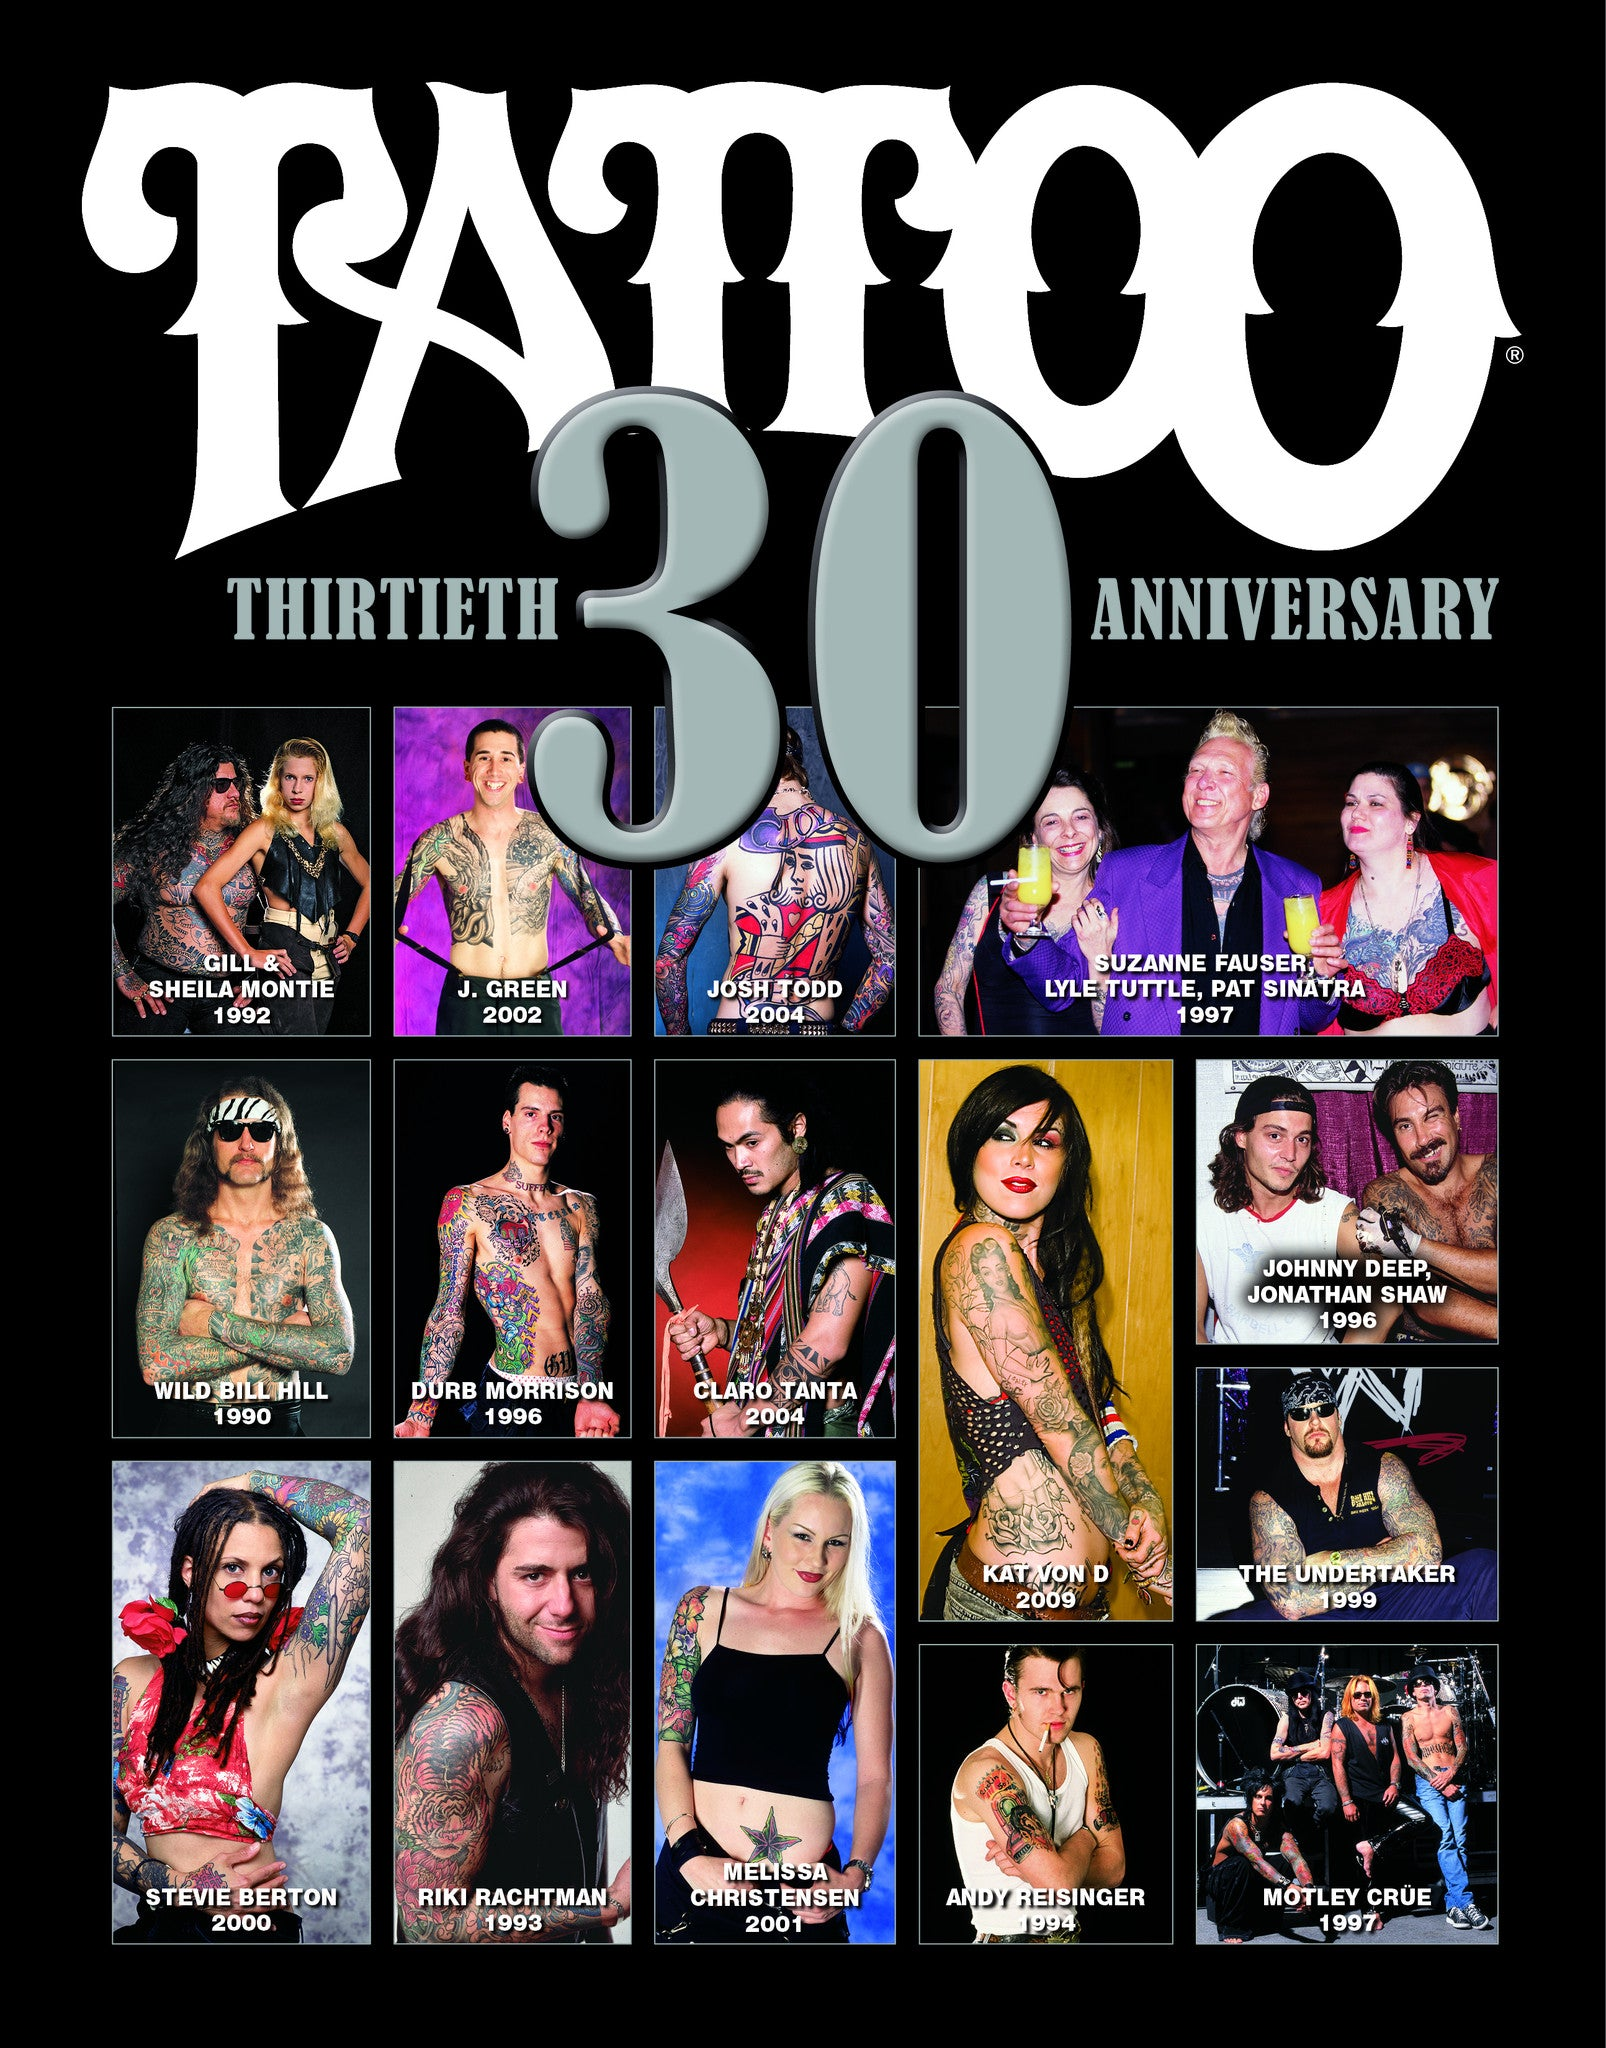 Best Price for Tattoo Magazine Subscription